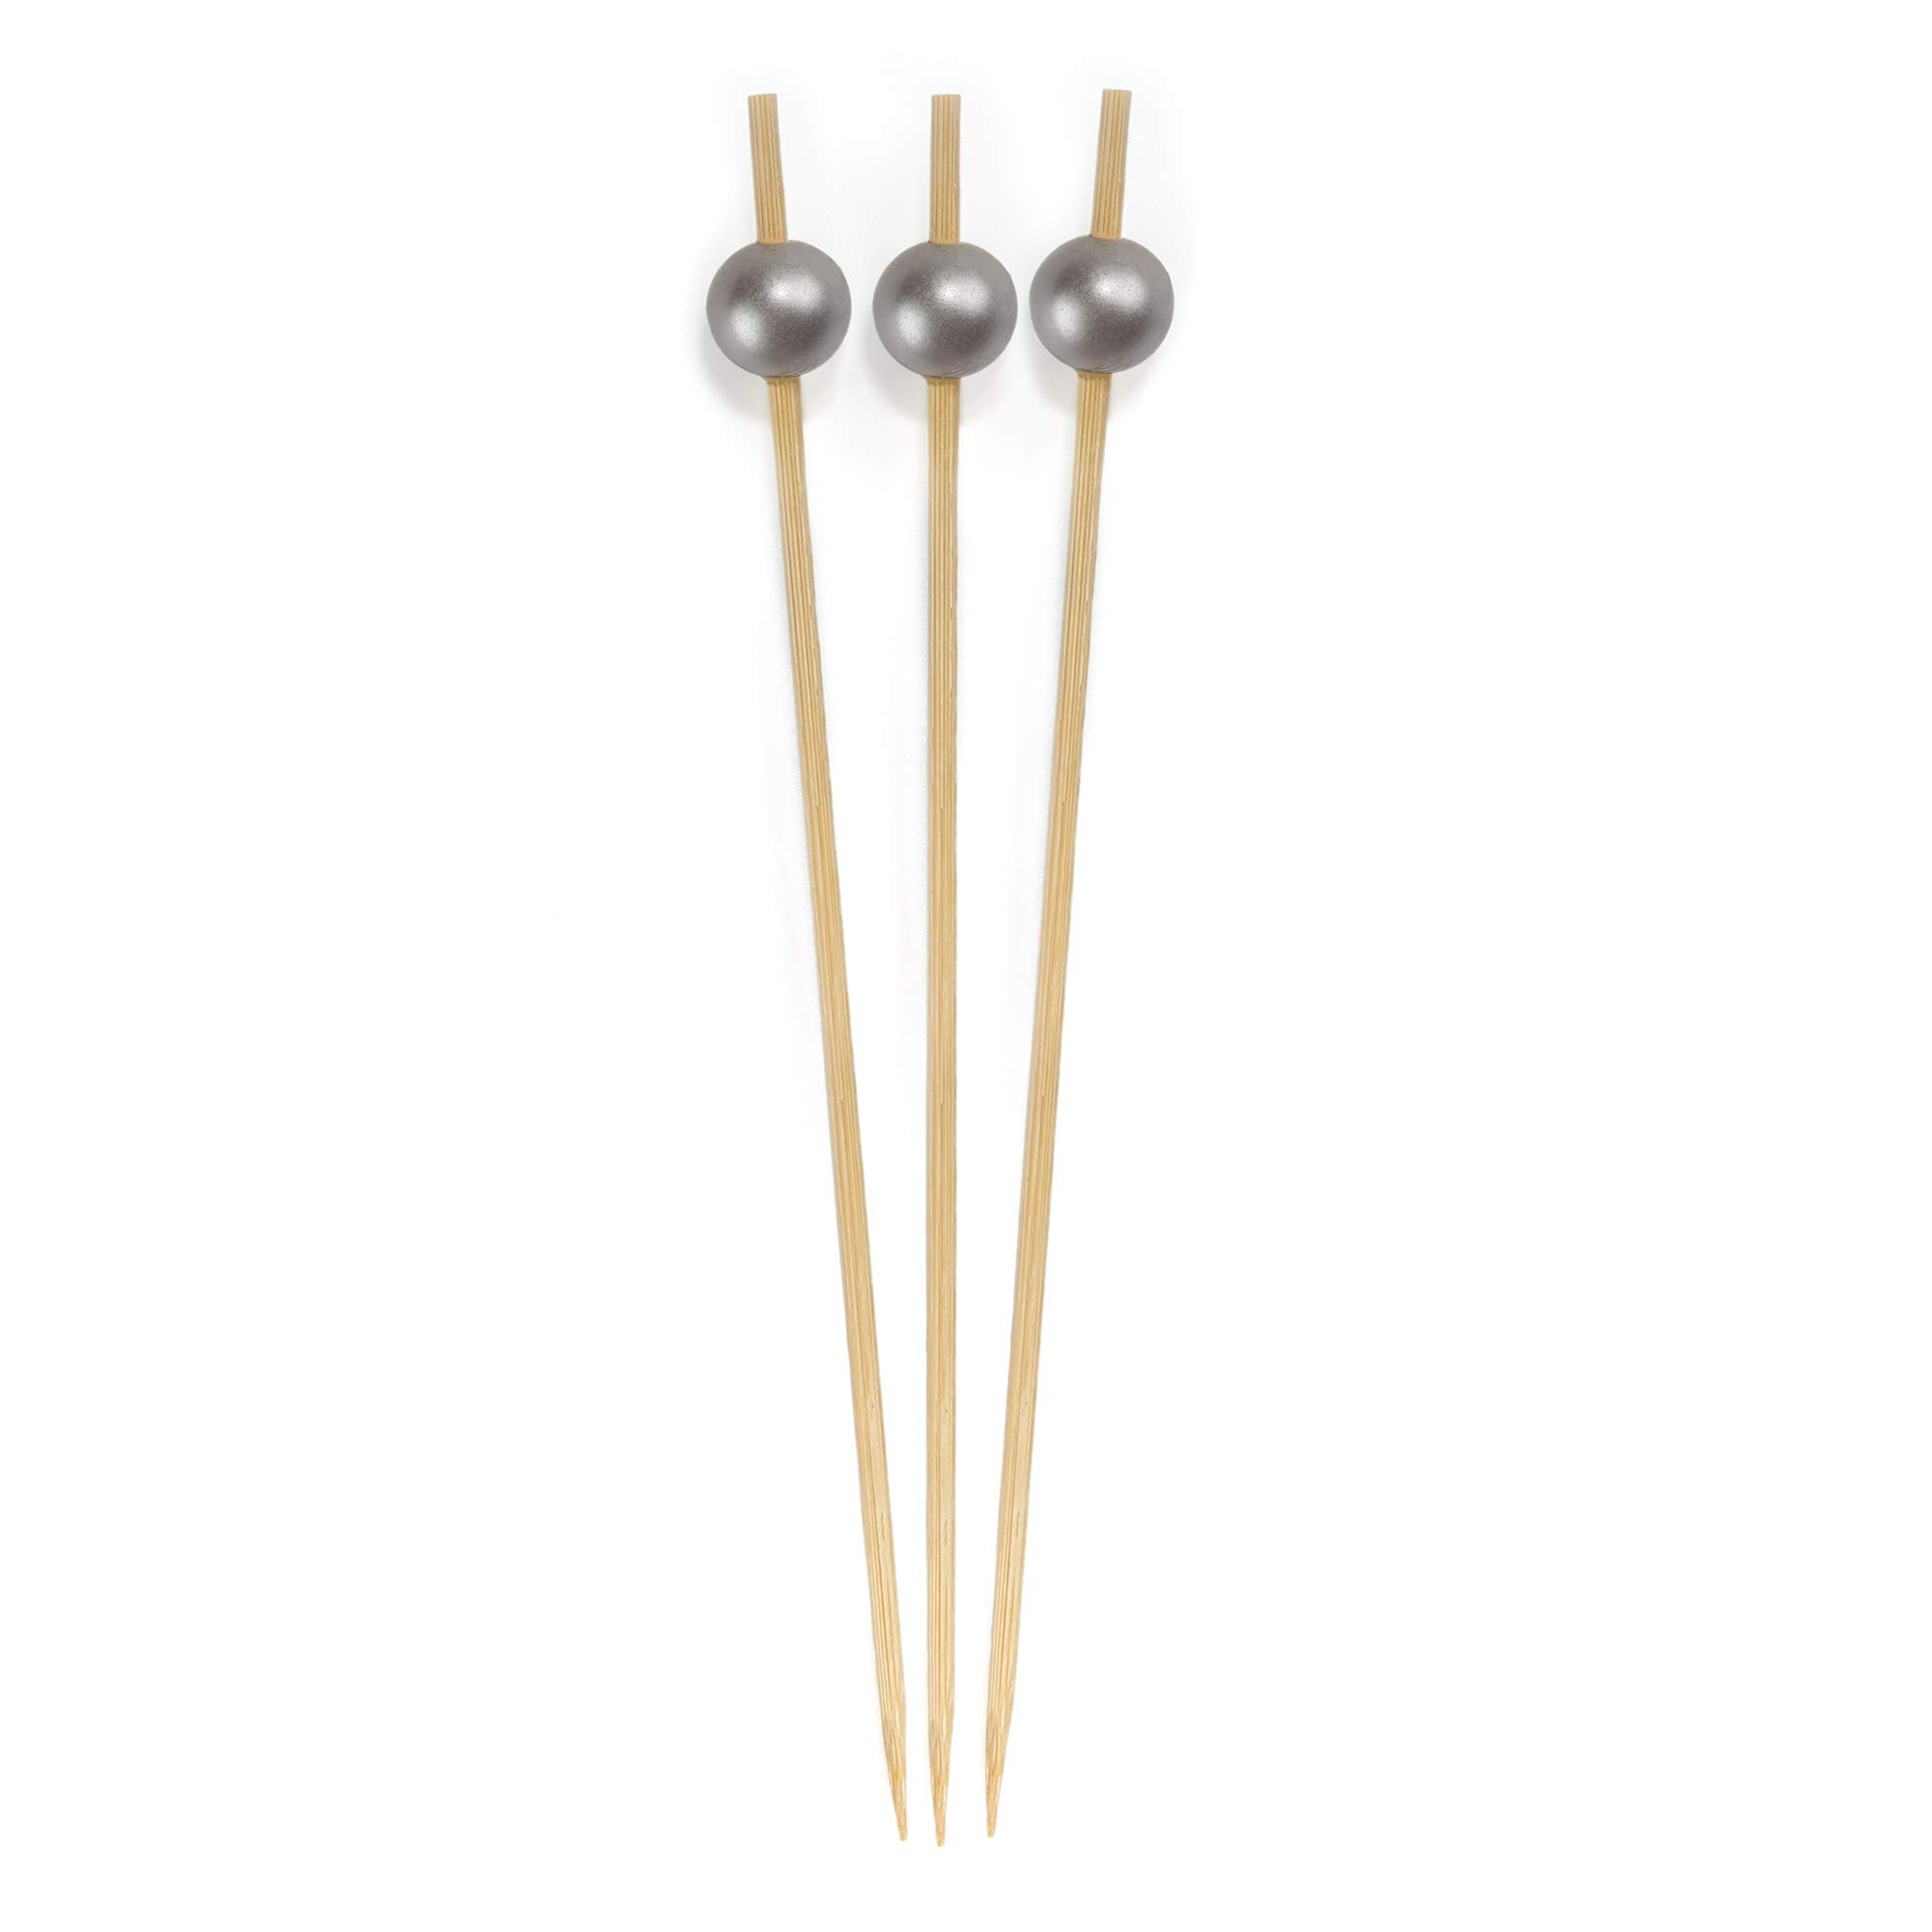 BambooMN 4.7'' Decorative Pearl End Cocktail Fruit Sandwich Picks Skewers for Catered Events, Holiday's, Restaurants or Buffets Party Supplies - 1000pcs, Matte Grey